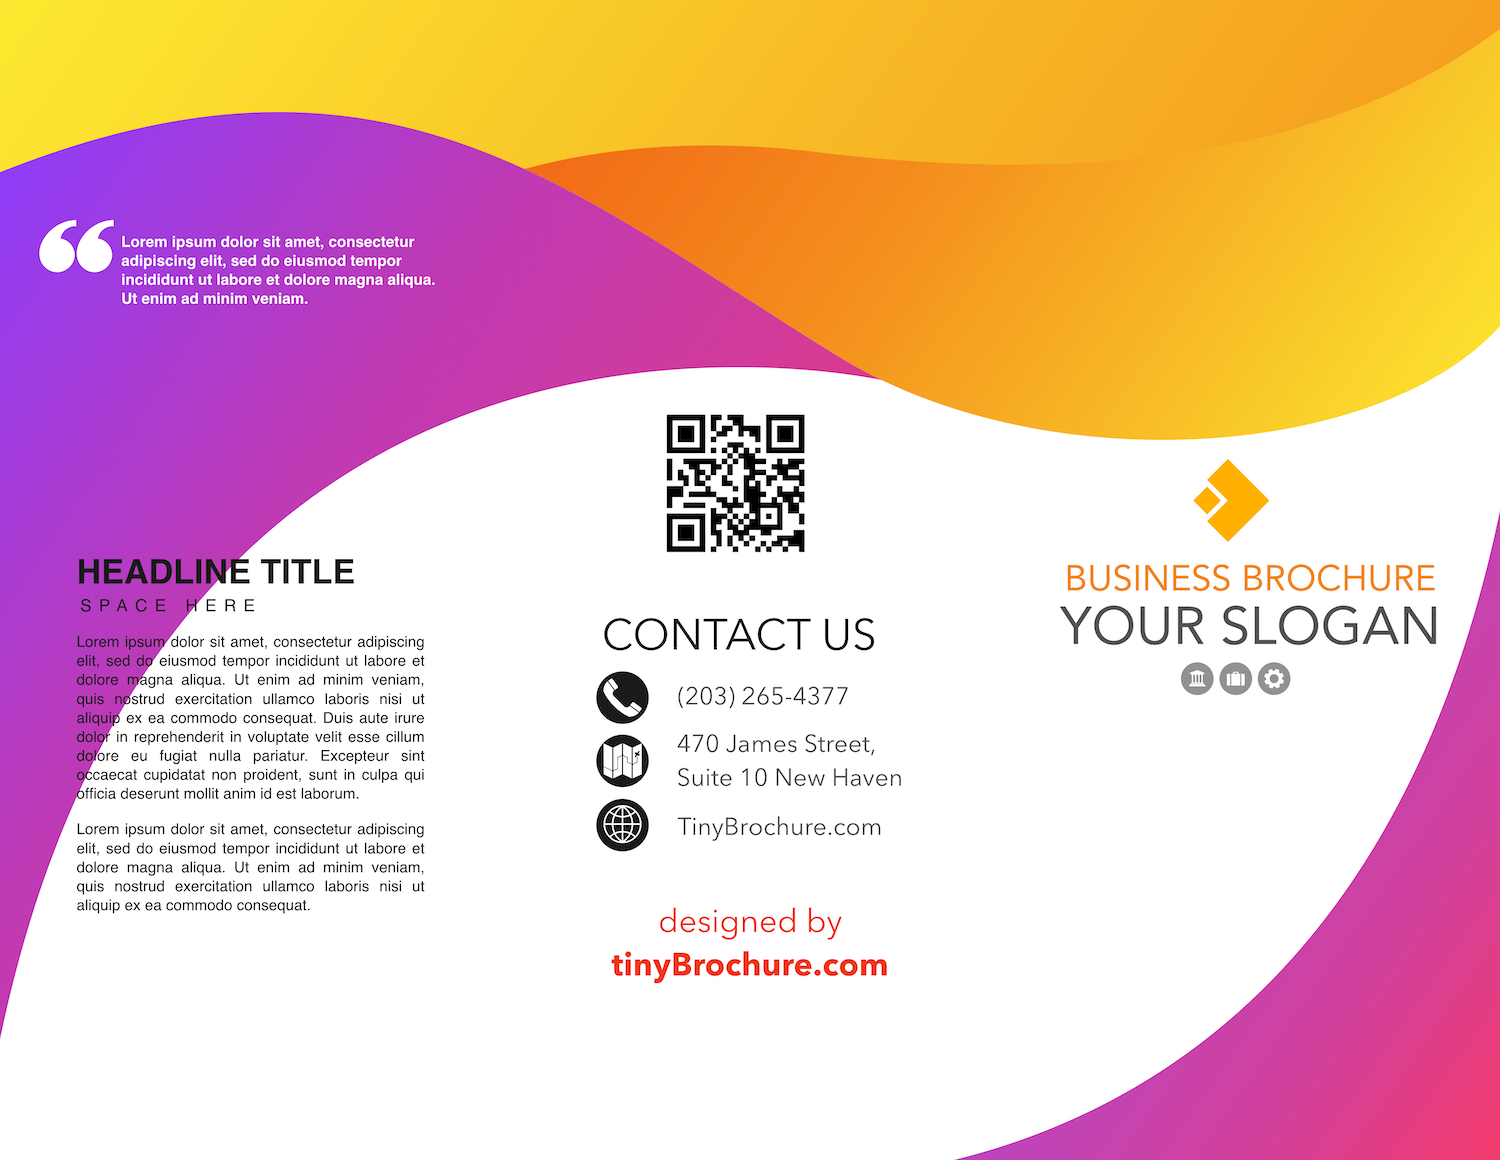 How To Make A Tri Fold Brochure In Google Docs Inside Tri Fold Brochure Template Google Docs